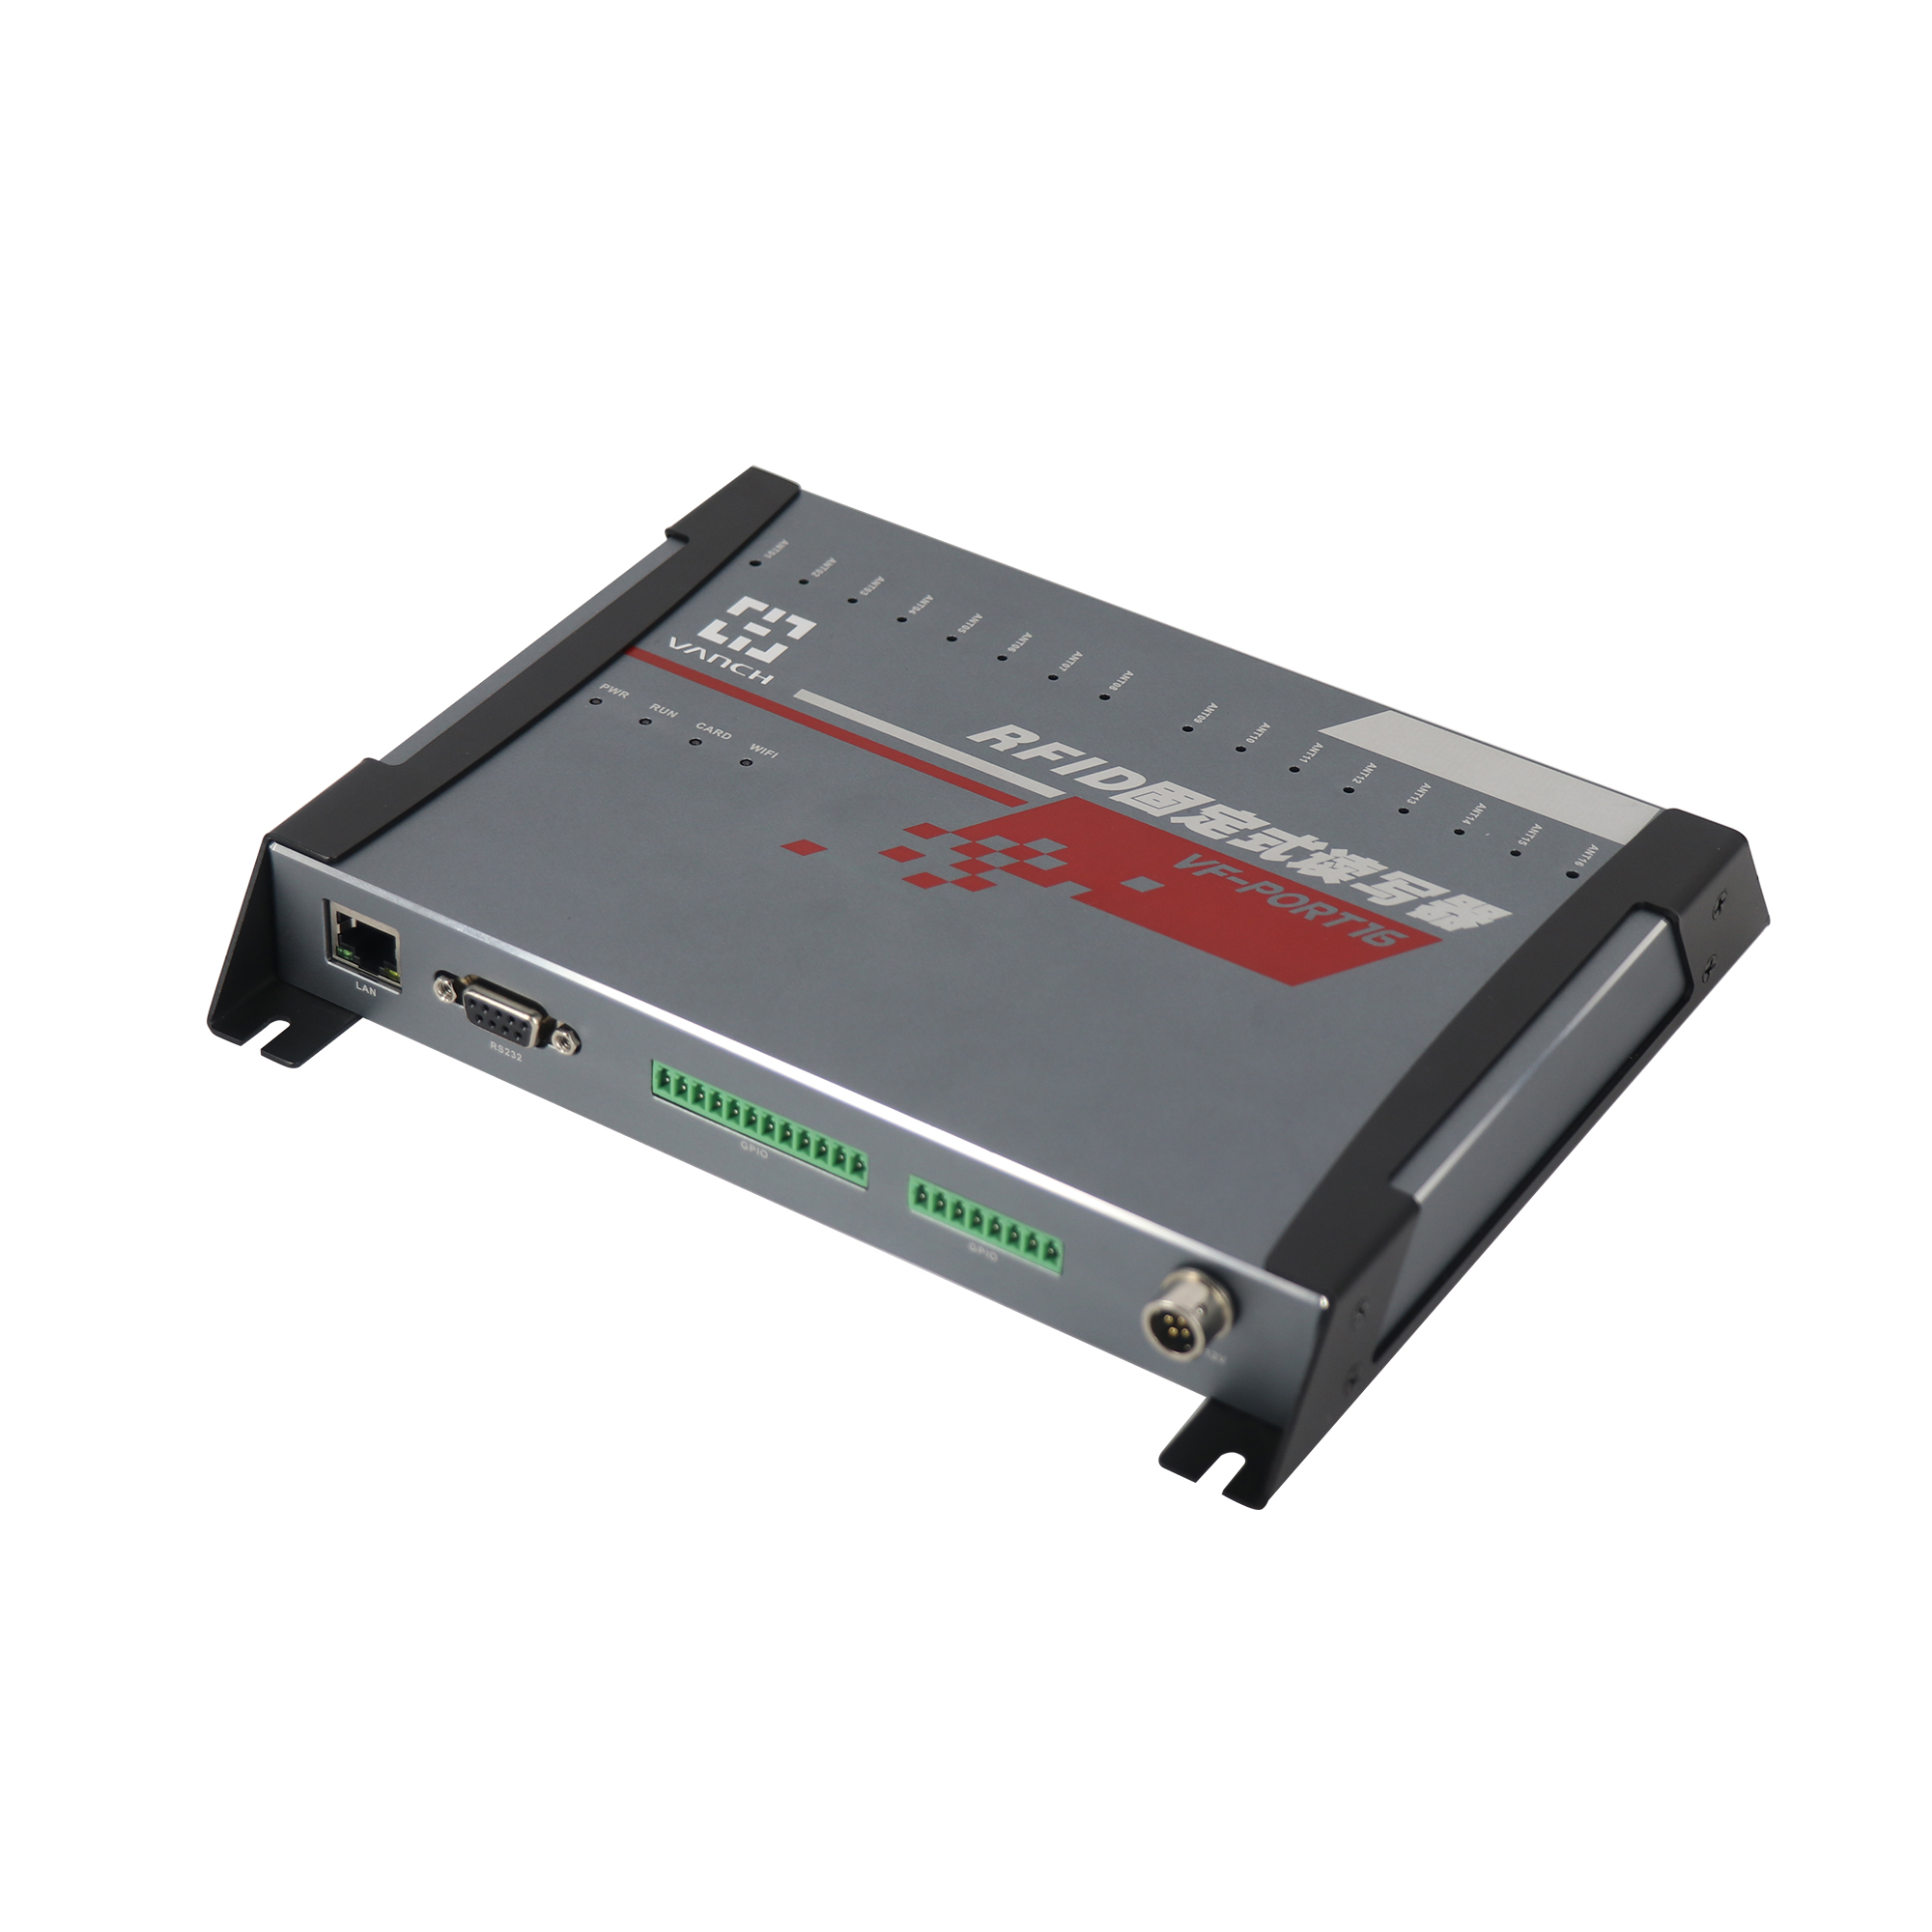 VF-P16 16 channels UHF RFID Fixed Reader